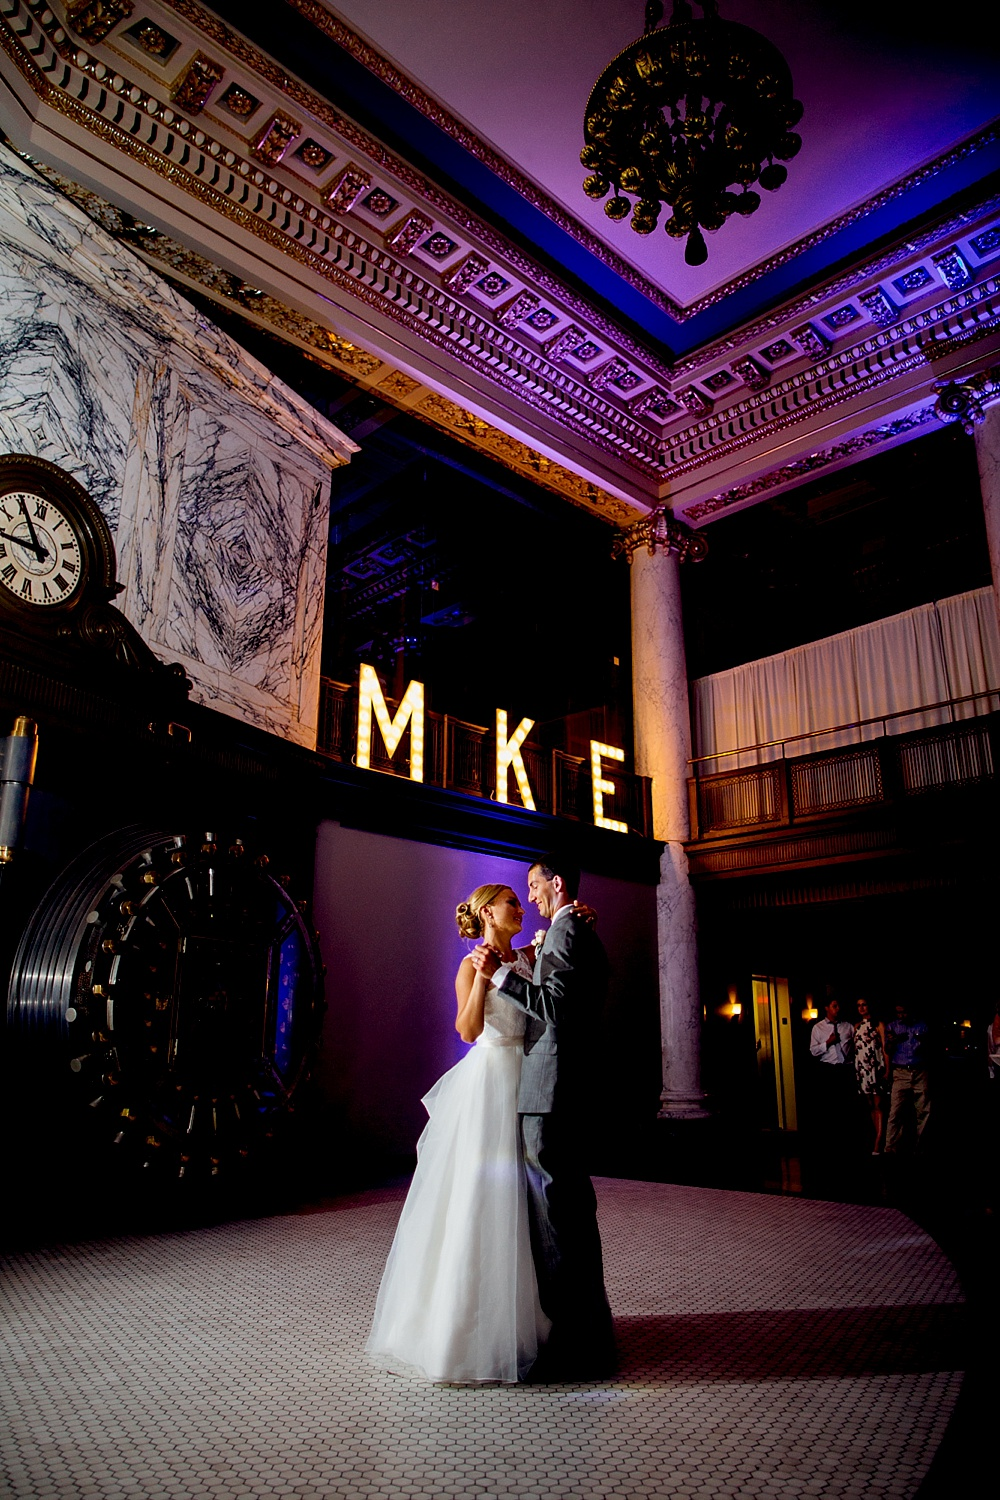 Milwaukee Historical Society - Milwaukee Wedding Photographer